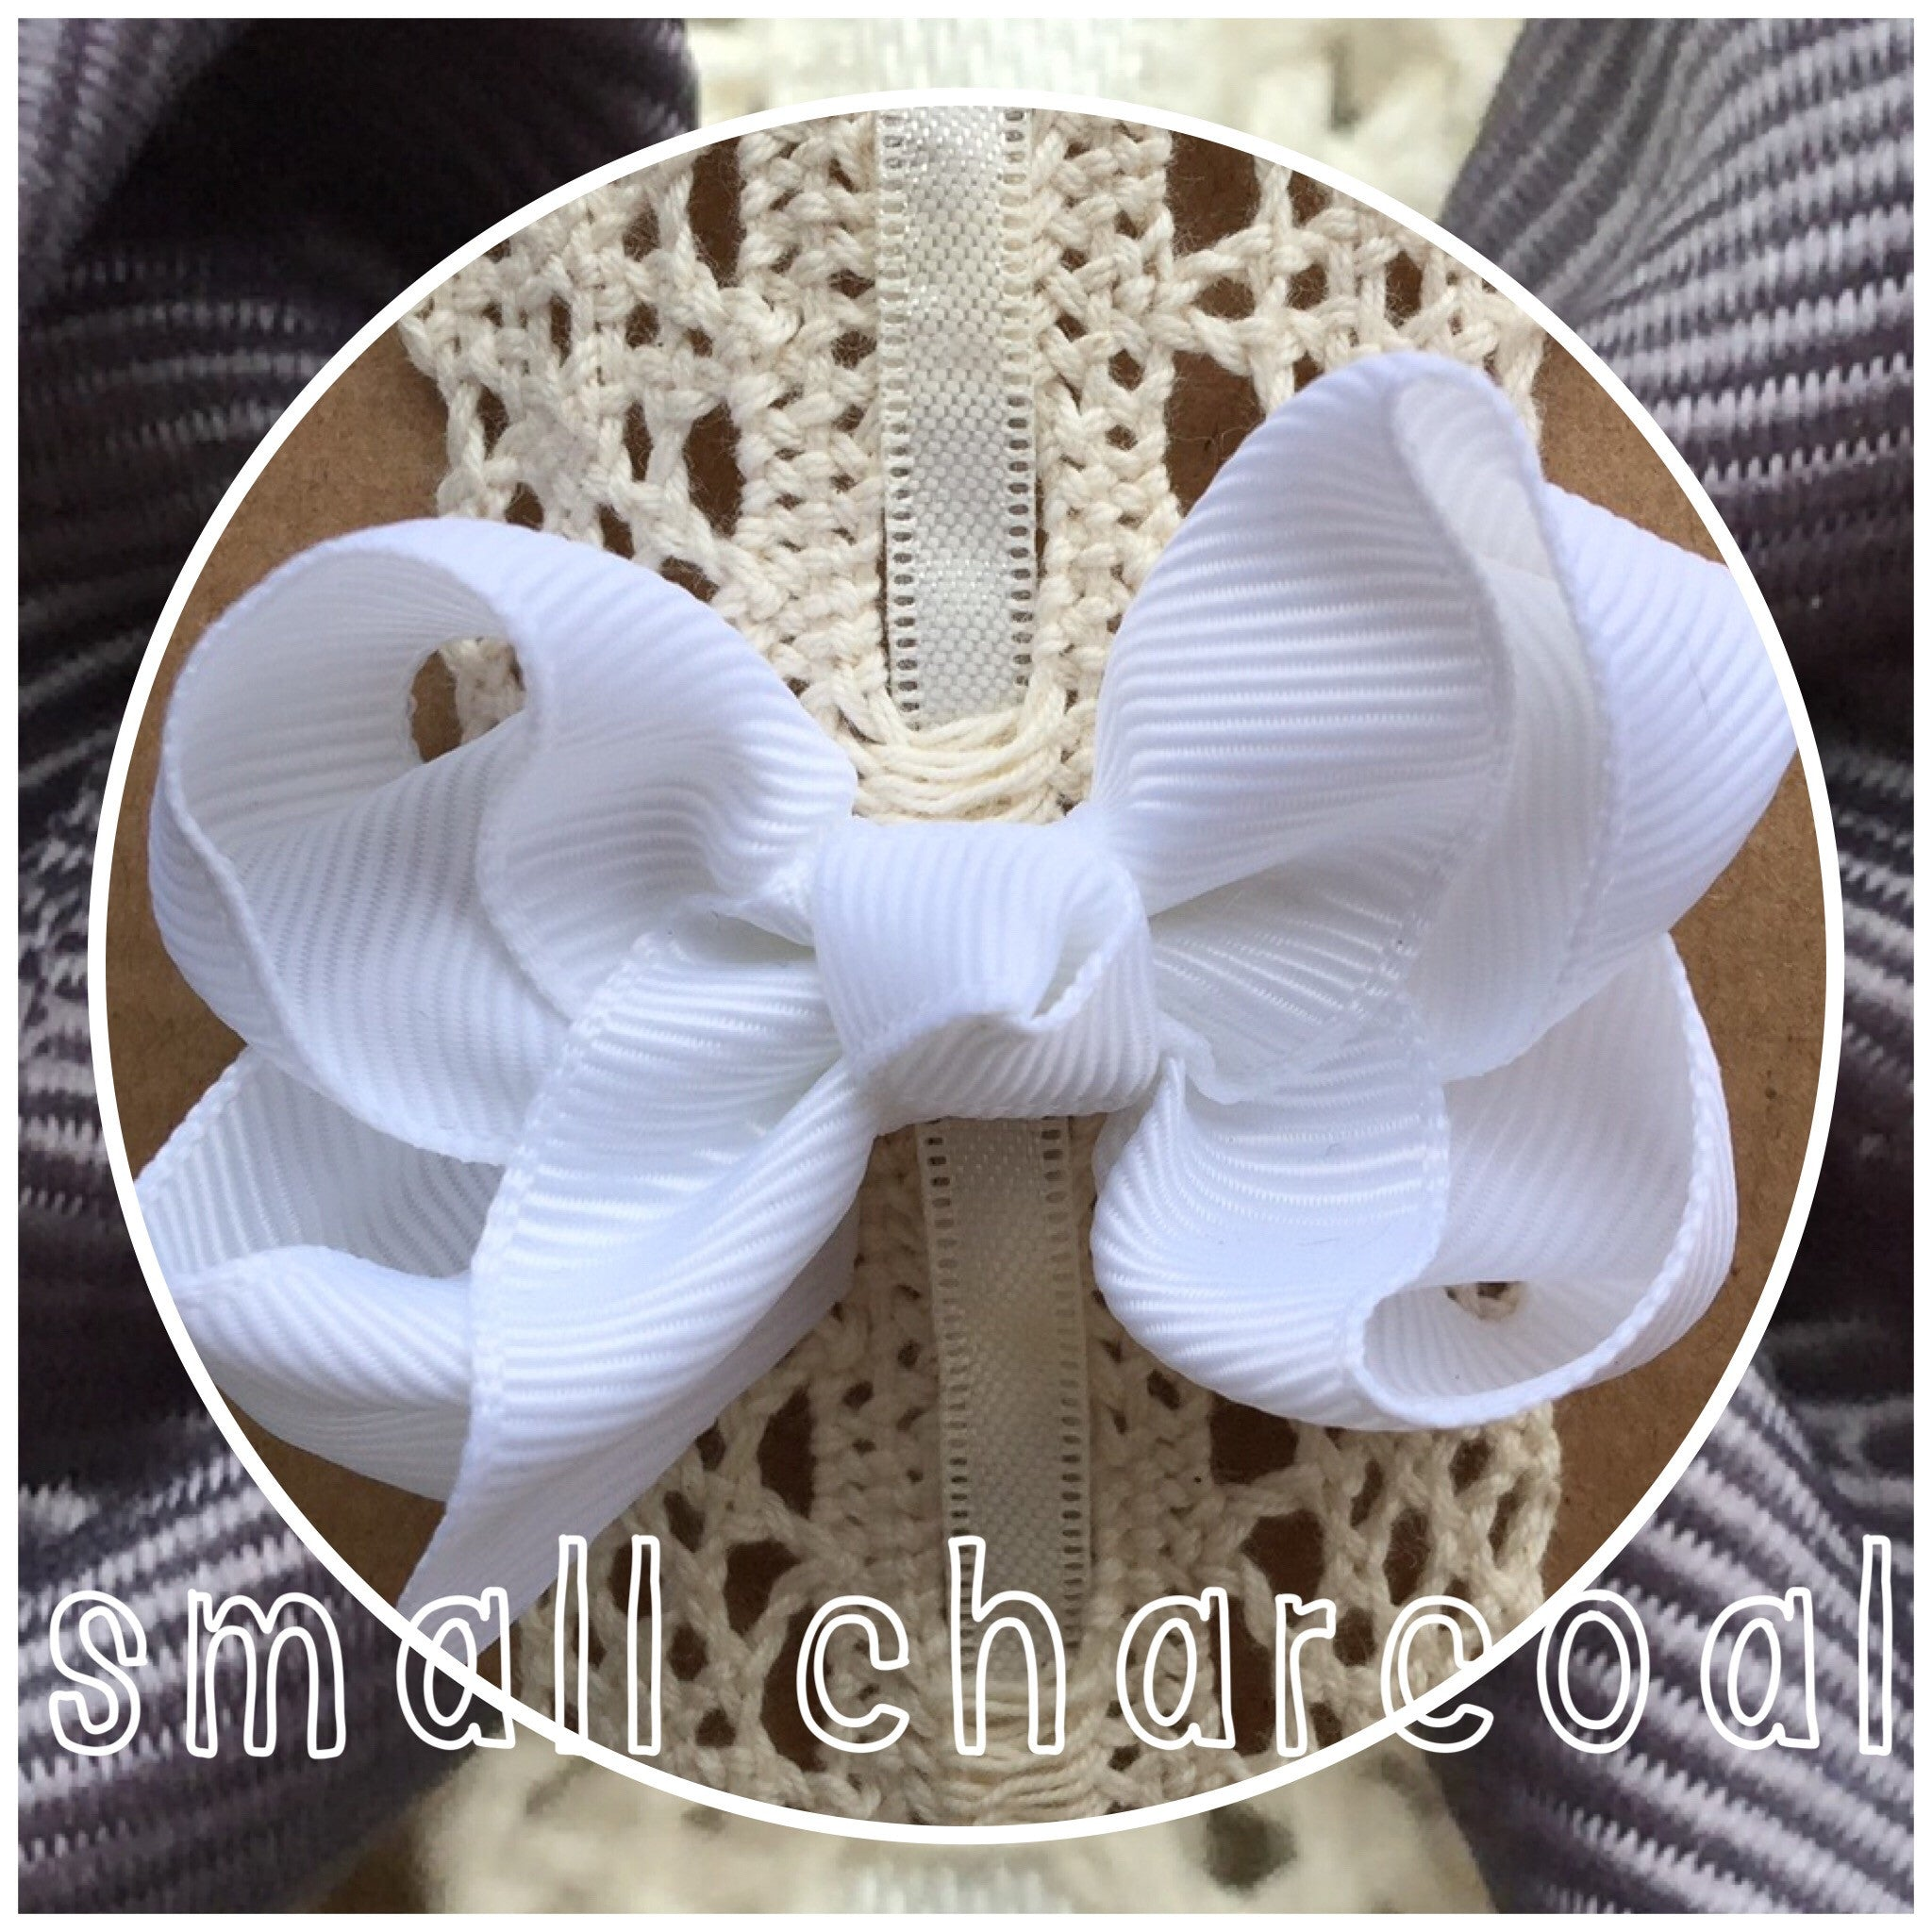 Small Classic Hair Bow - Charcoal - Cutie Bowtutie